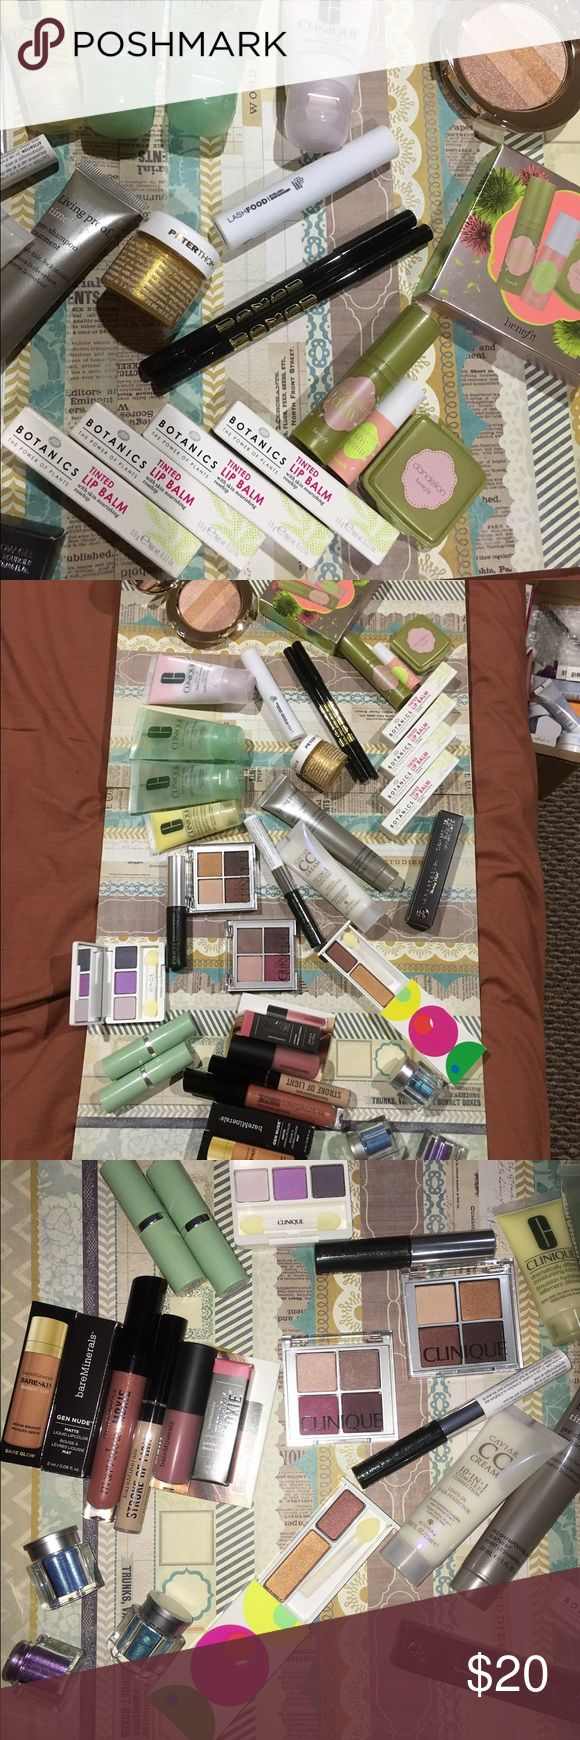 Boots botanics pick 4 Unopened, never used .... Clinique, bare minerals, buxom, benefit, boots botanics, no 7, smashbox, and more...    pick 4 items for $15  .     I have other makeup auctions so check those too.     The peter Roth gold is 0.5 oz (15ml) botanics Makeup